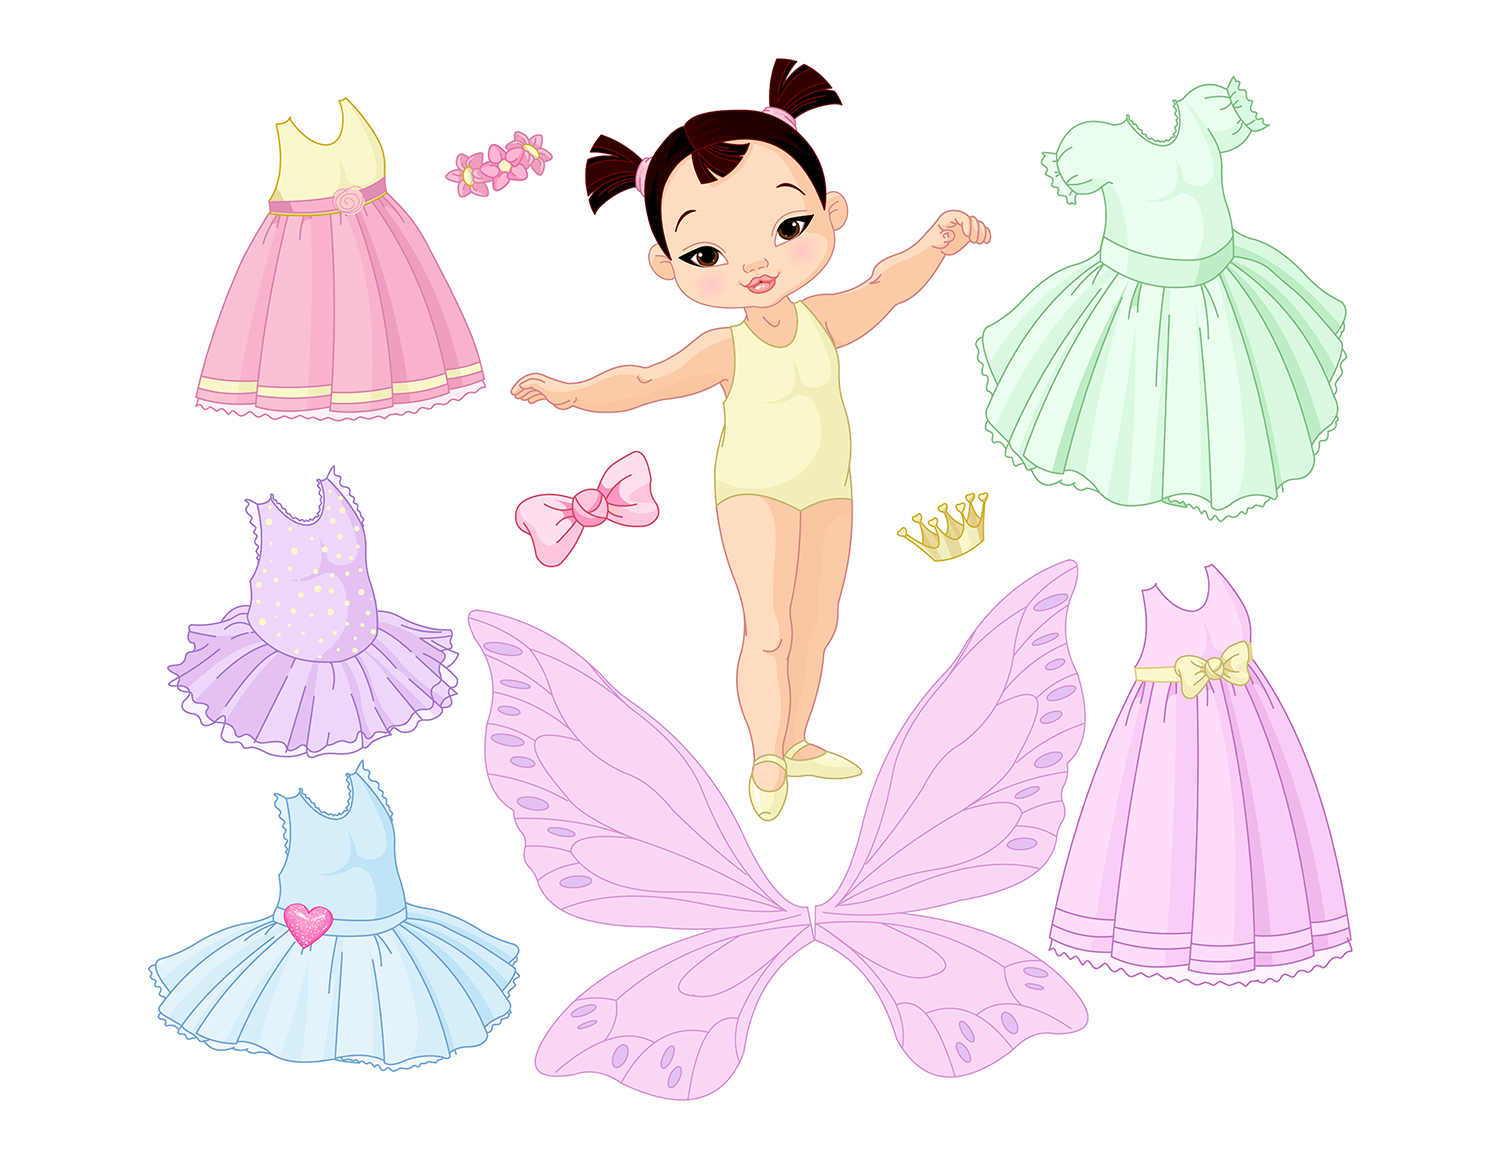 Paper Baby Girl with Different Fairy, Ballet and Princess Dresses